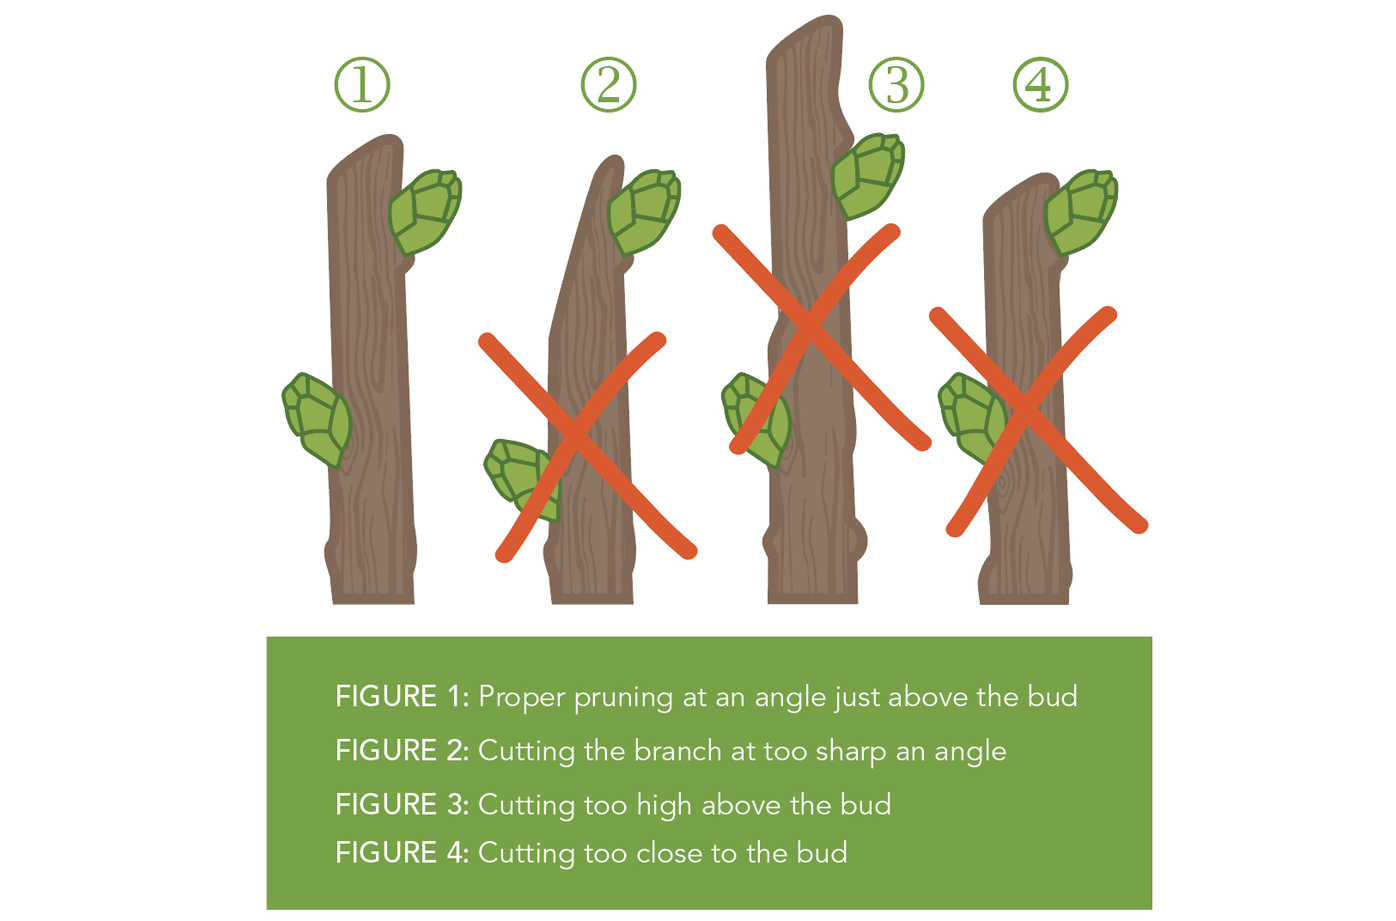 Pruning cuts should be made above a bud or branch that is pointing in the direction of the desired new growth.